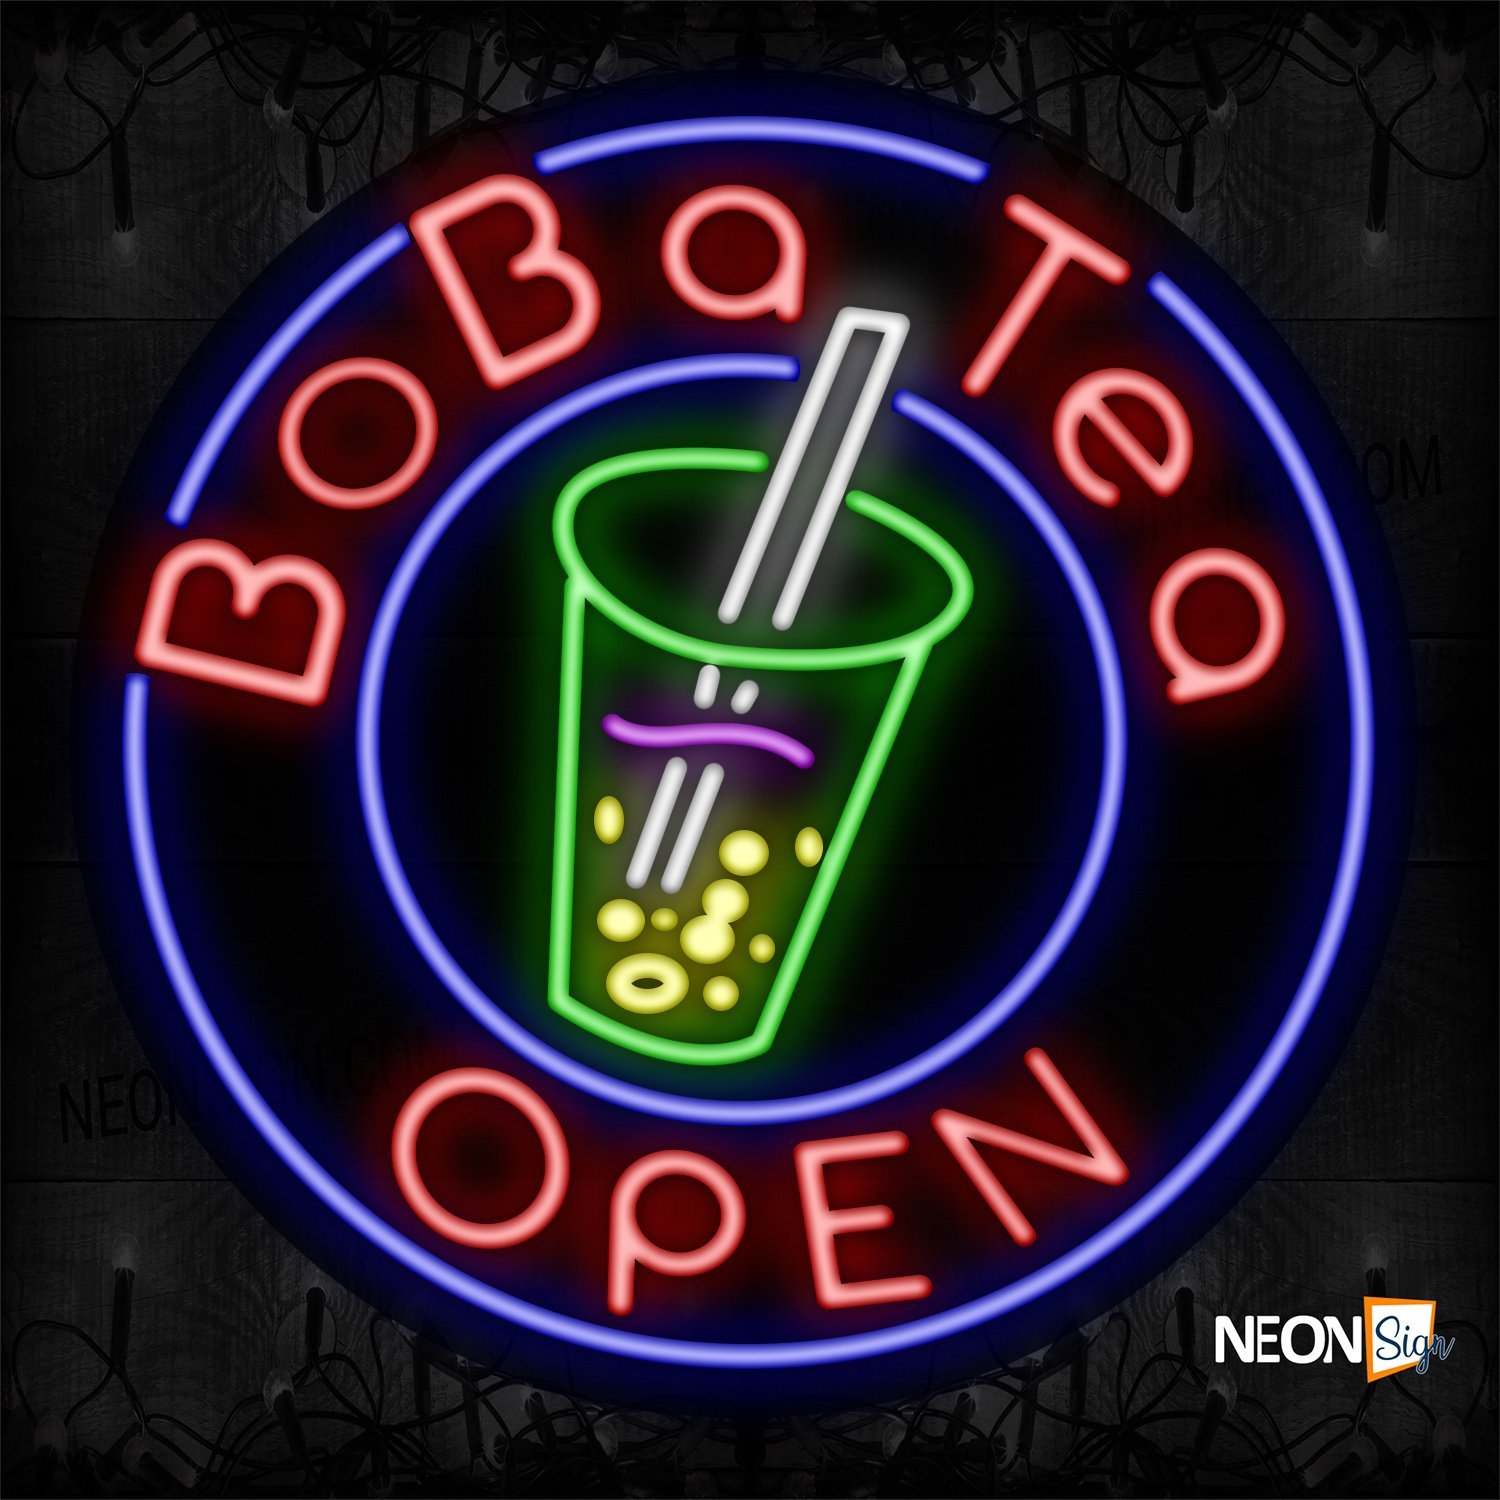 Image of Boba Tea Open With Blue Circle Border And Logo Neon Sign